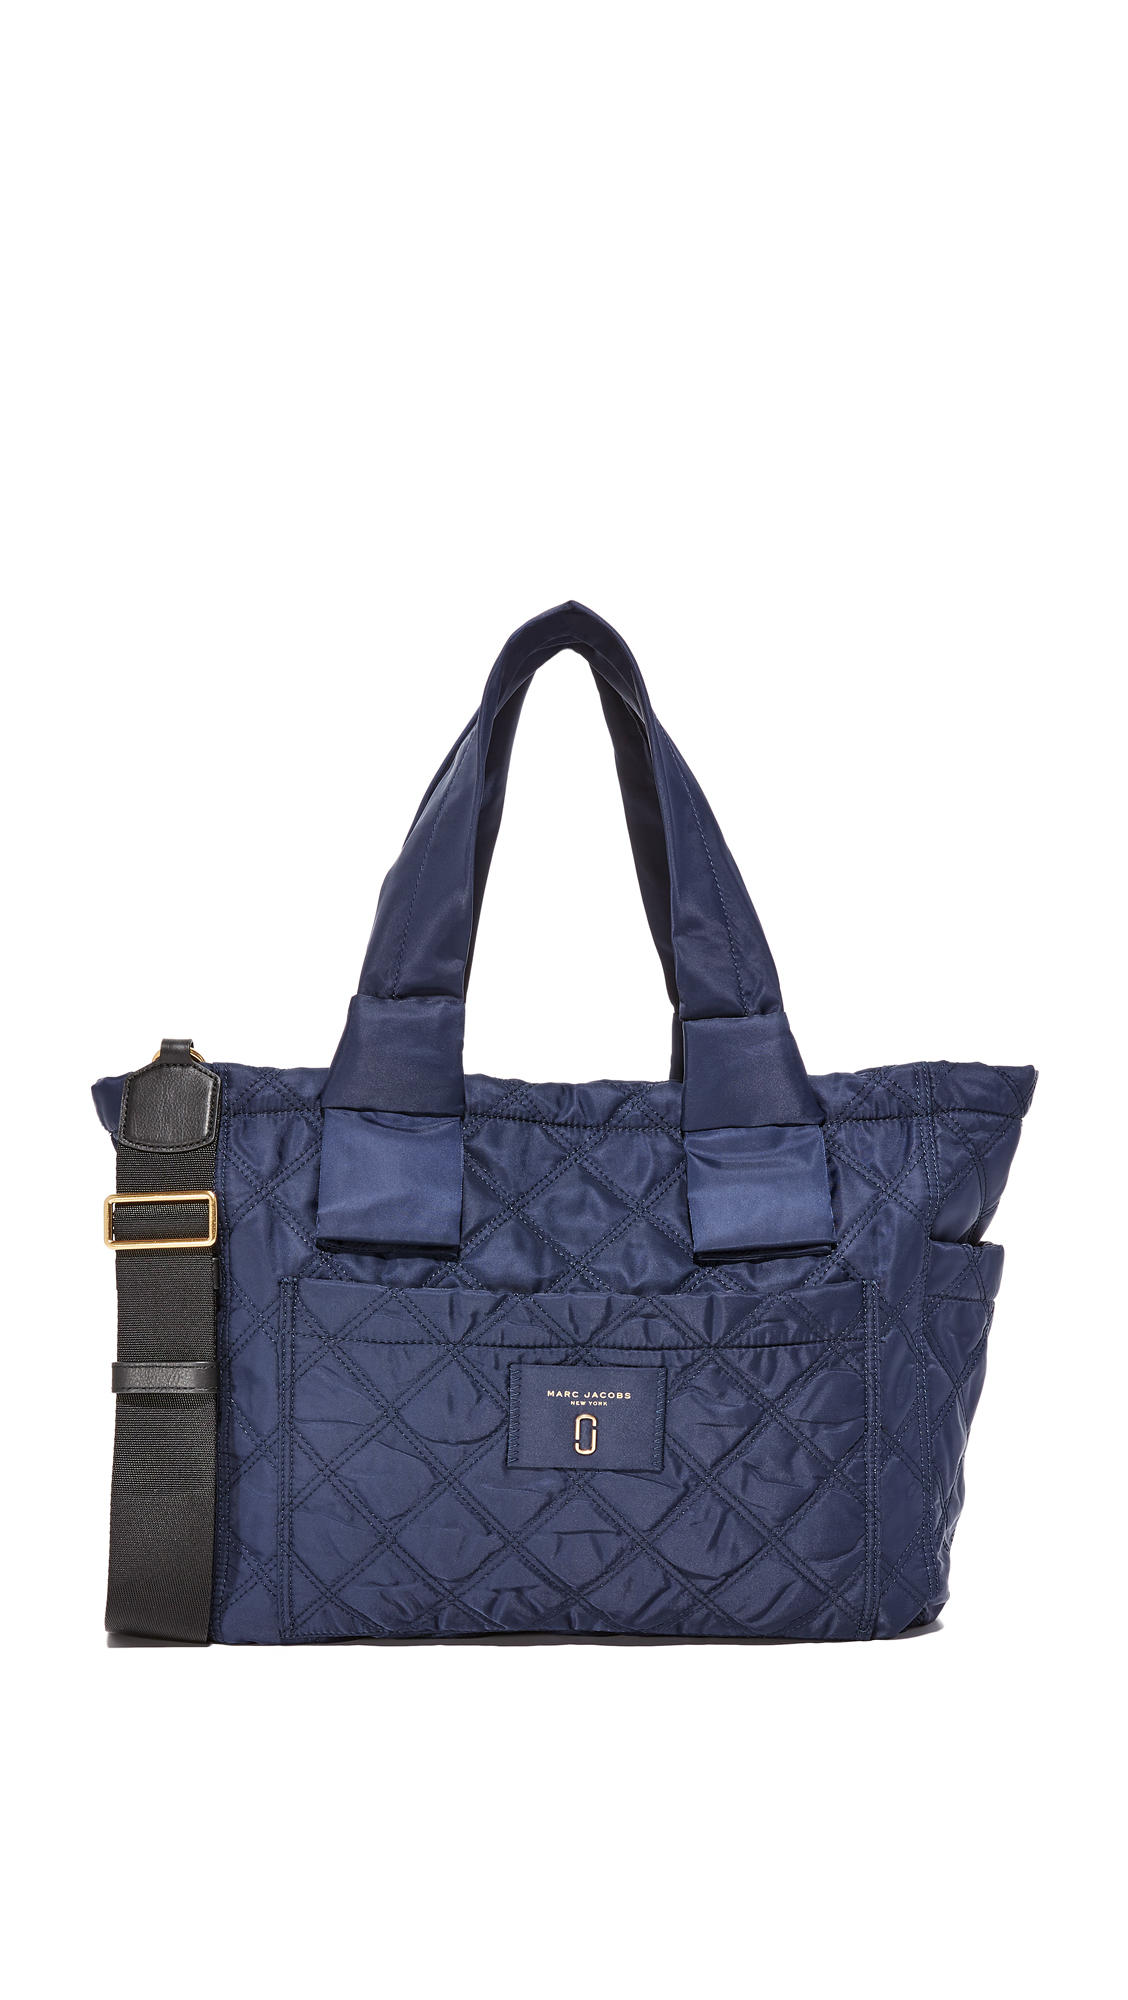 marc jacobs female marc jacobs nylon knot baby bag midnight blue